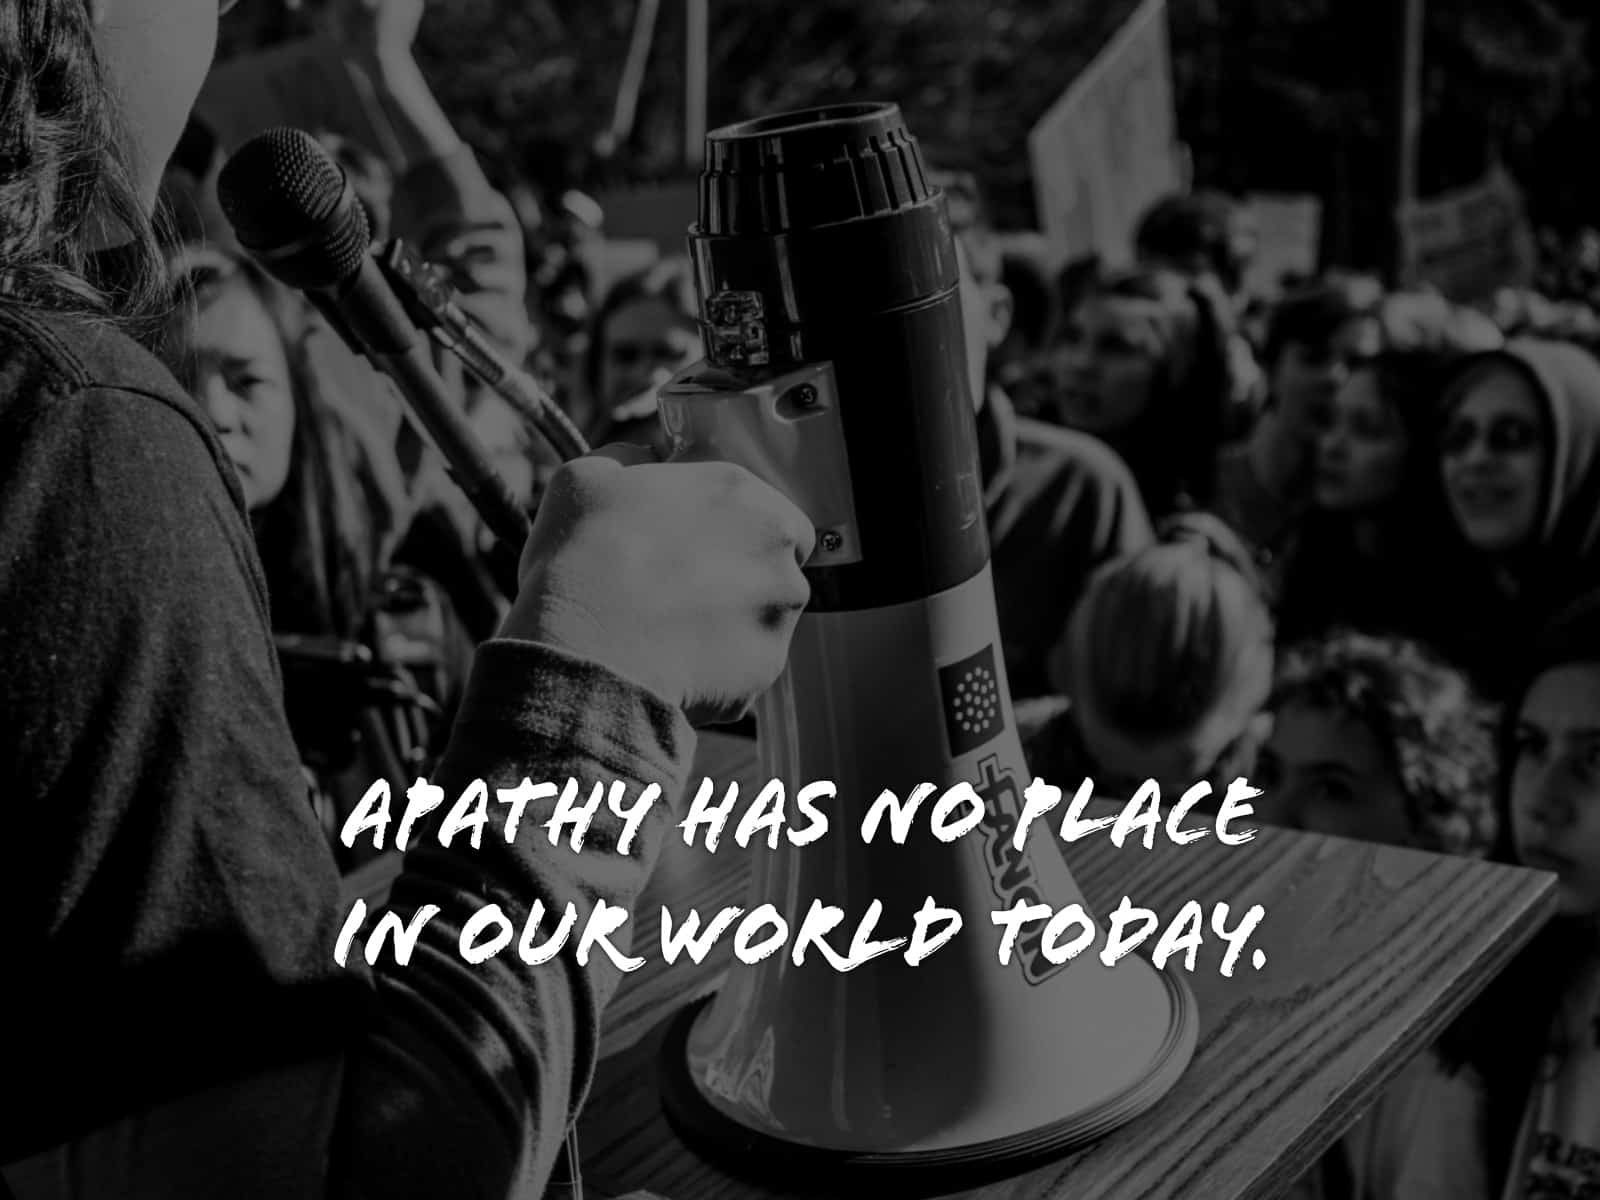 Apathy has no place in our world today.